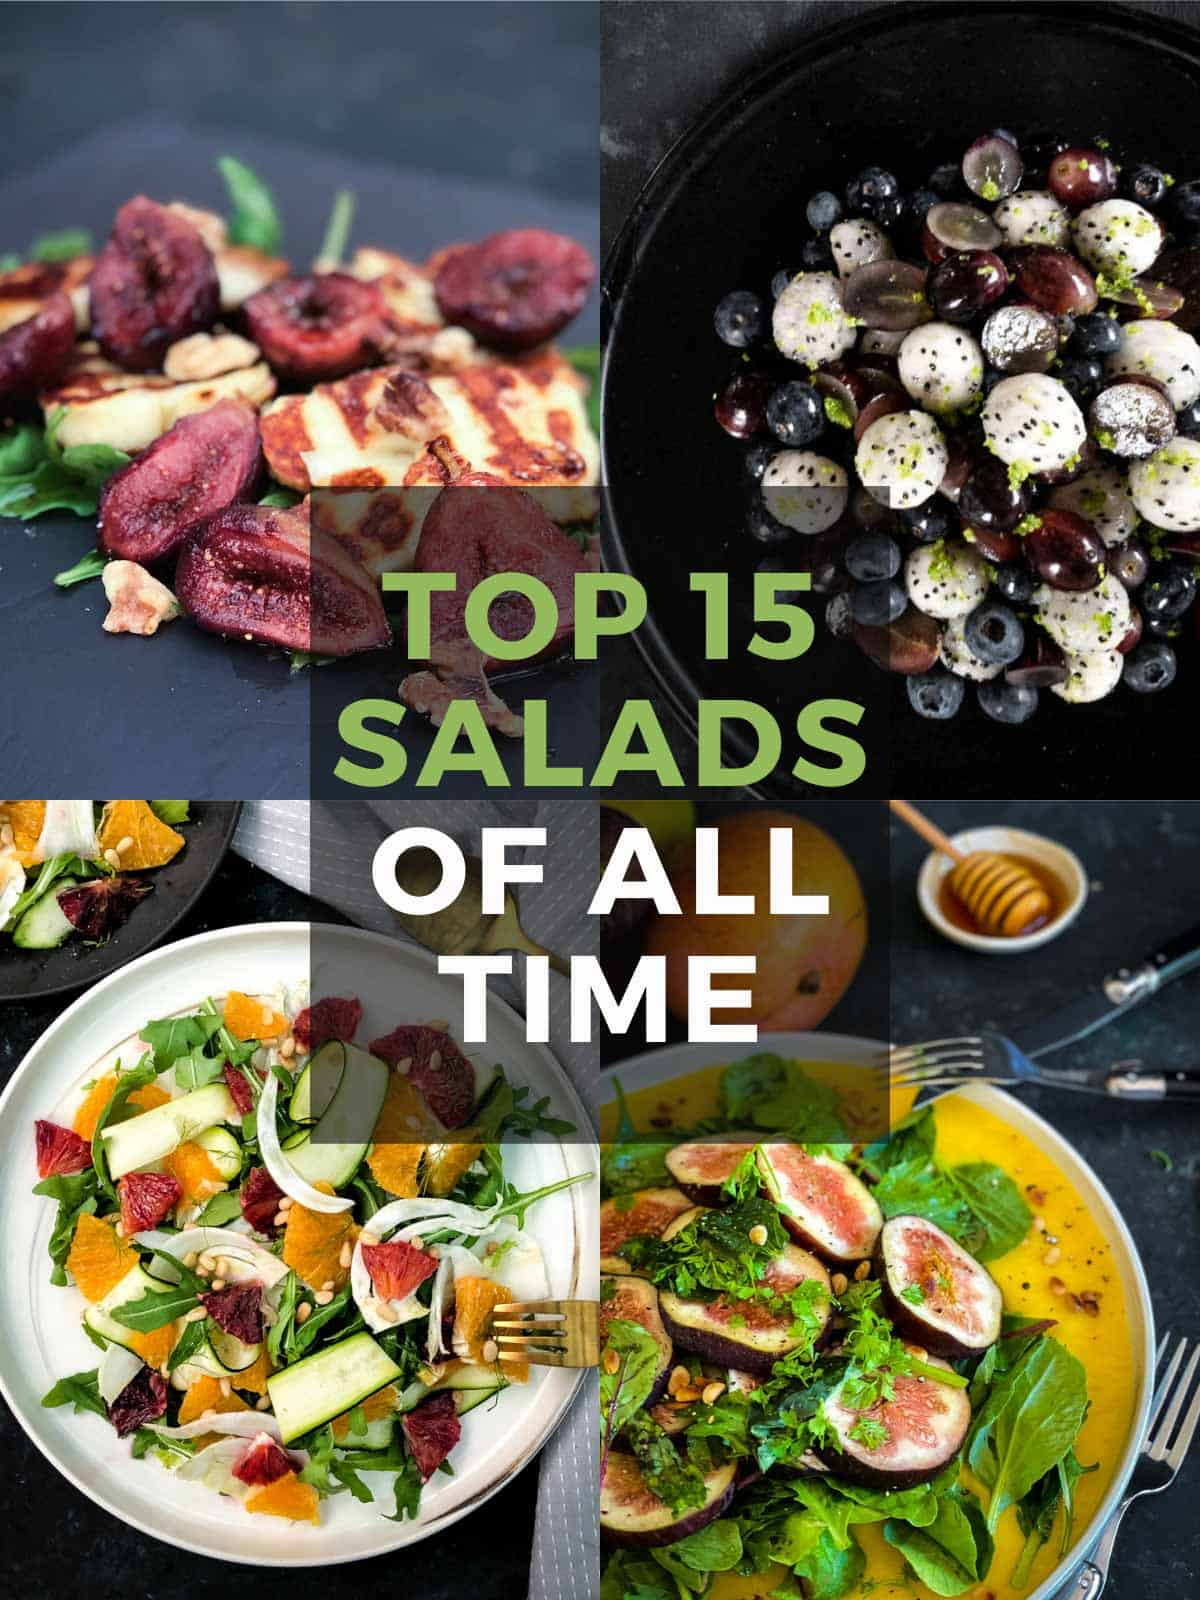 The Devil Wears Salad's Top 15 Salads of All Time